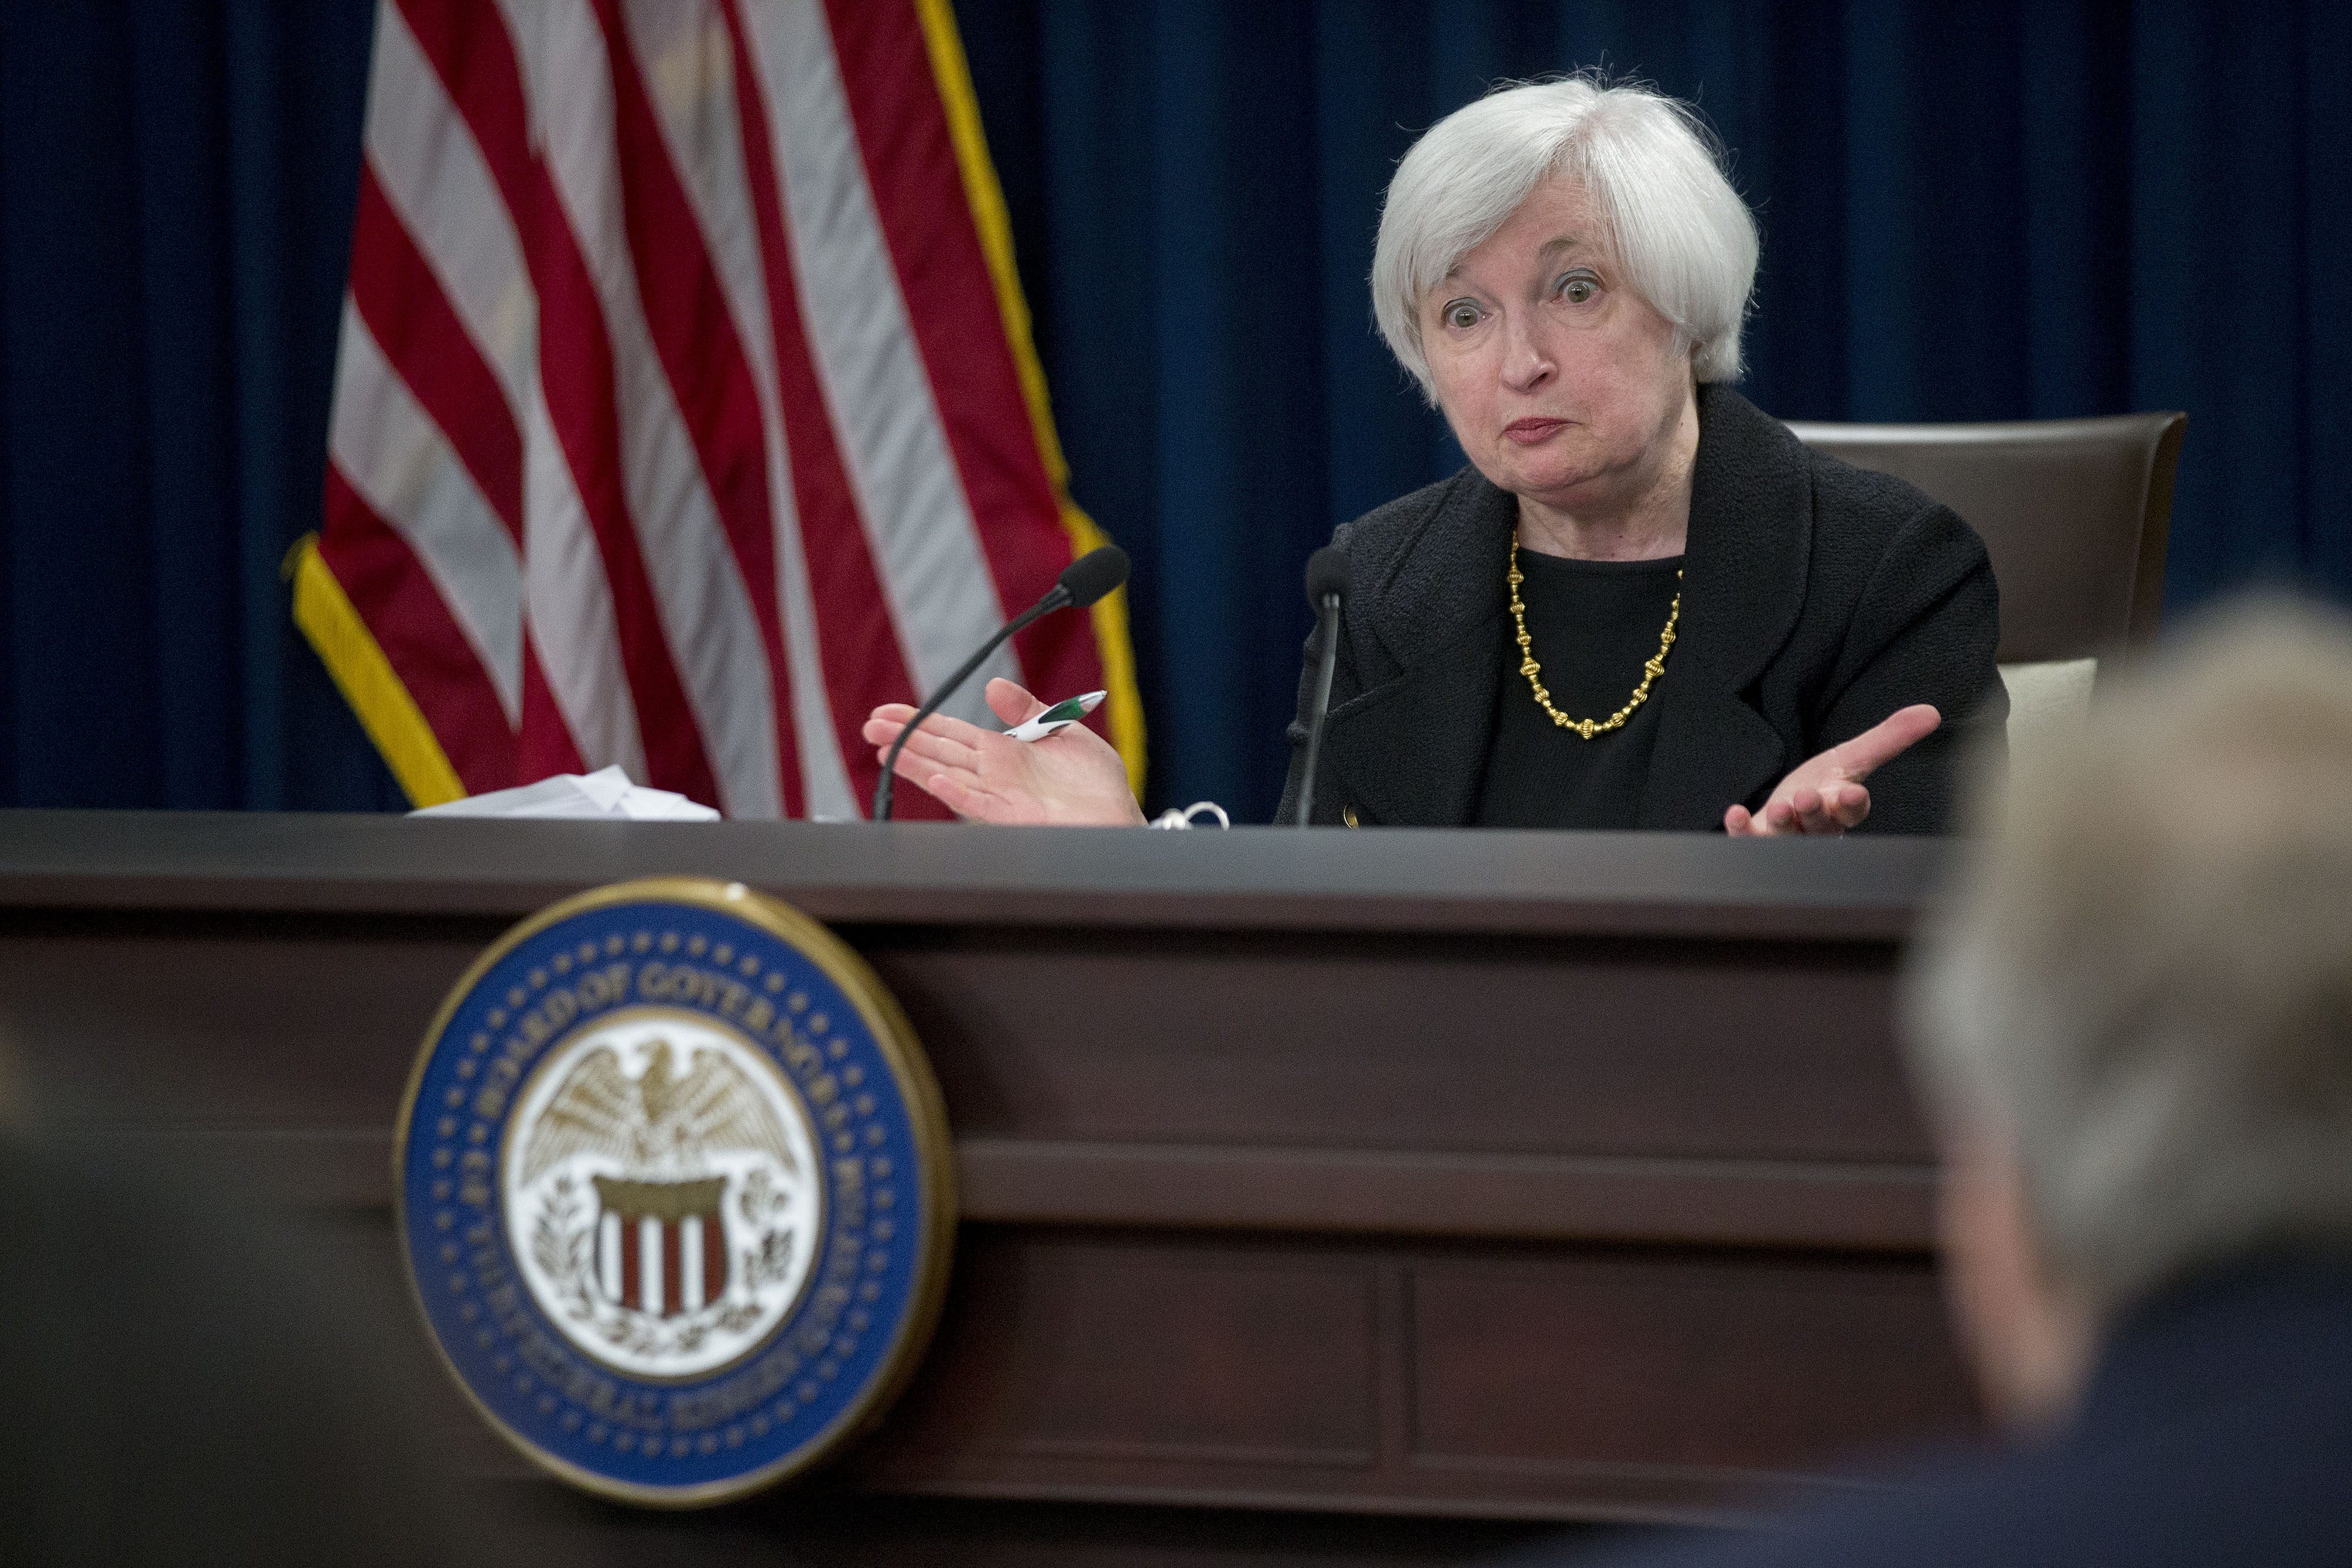 U.S. Federal Reserve Chair Janet Yellen News Conference Following FOMC Meeting